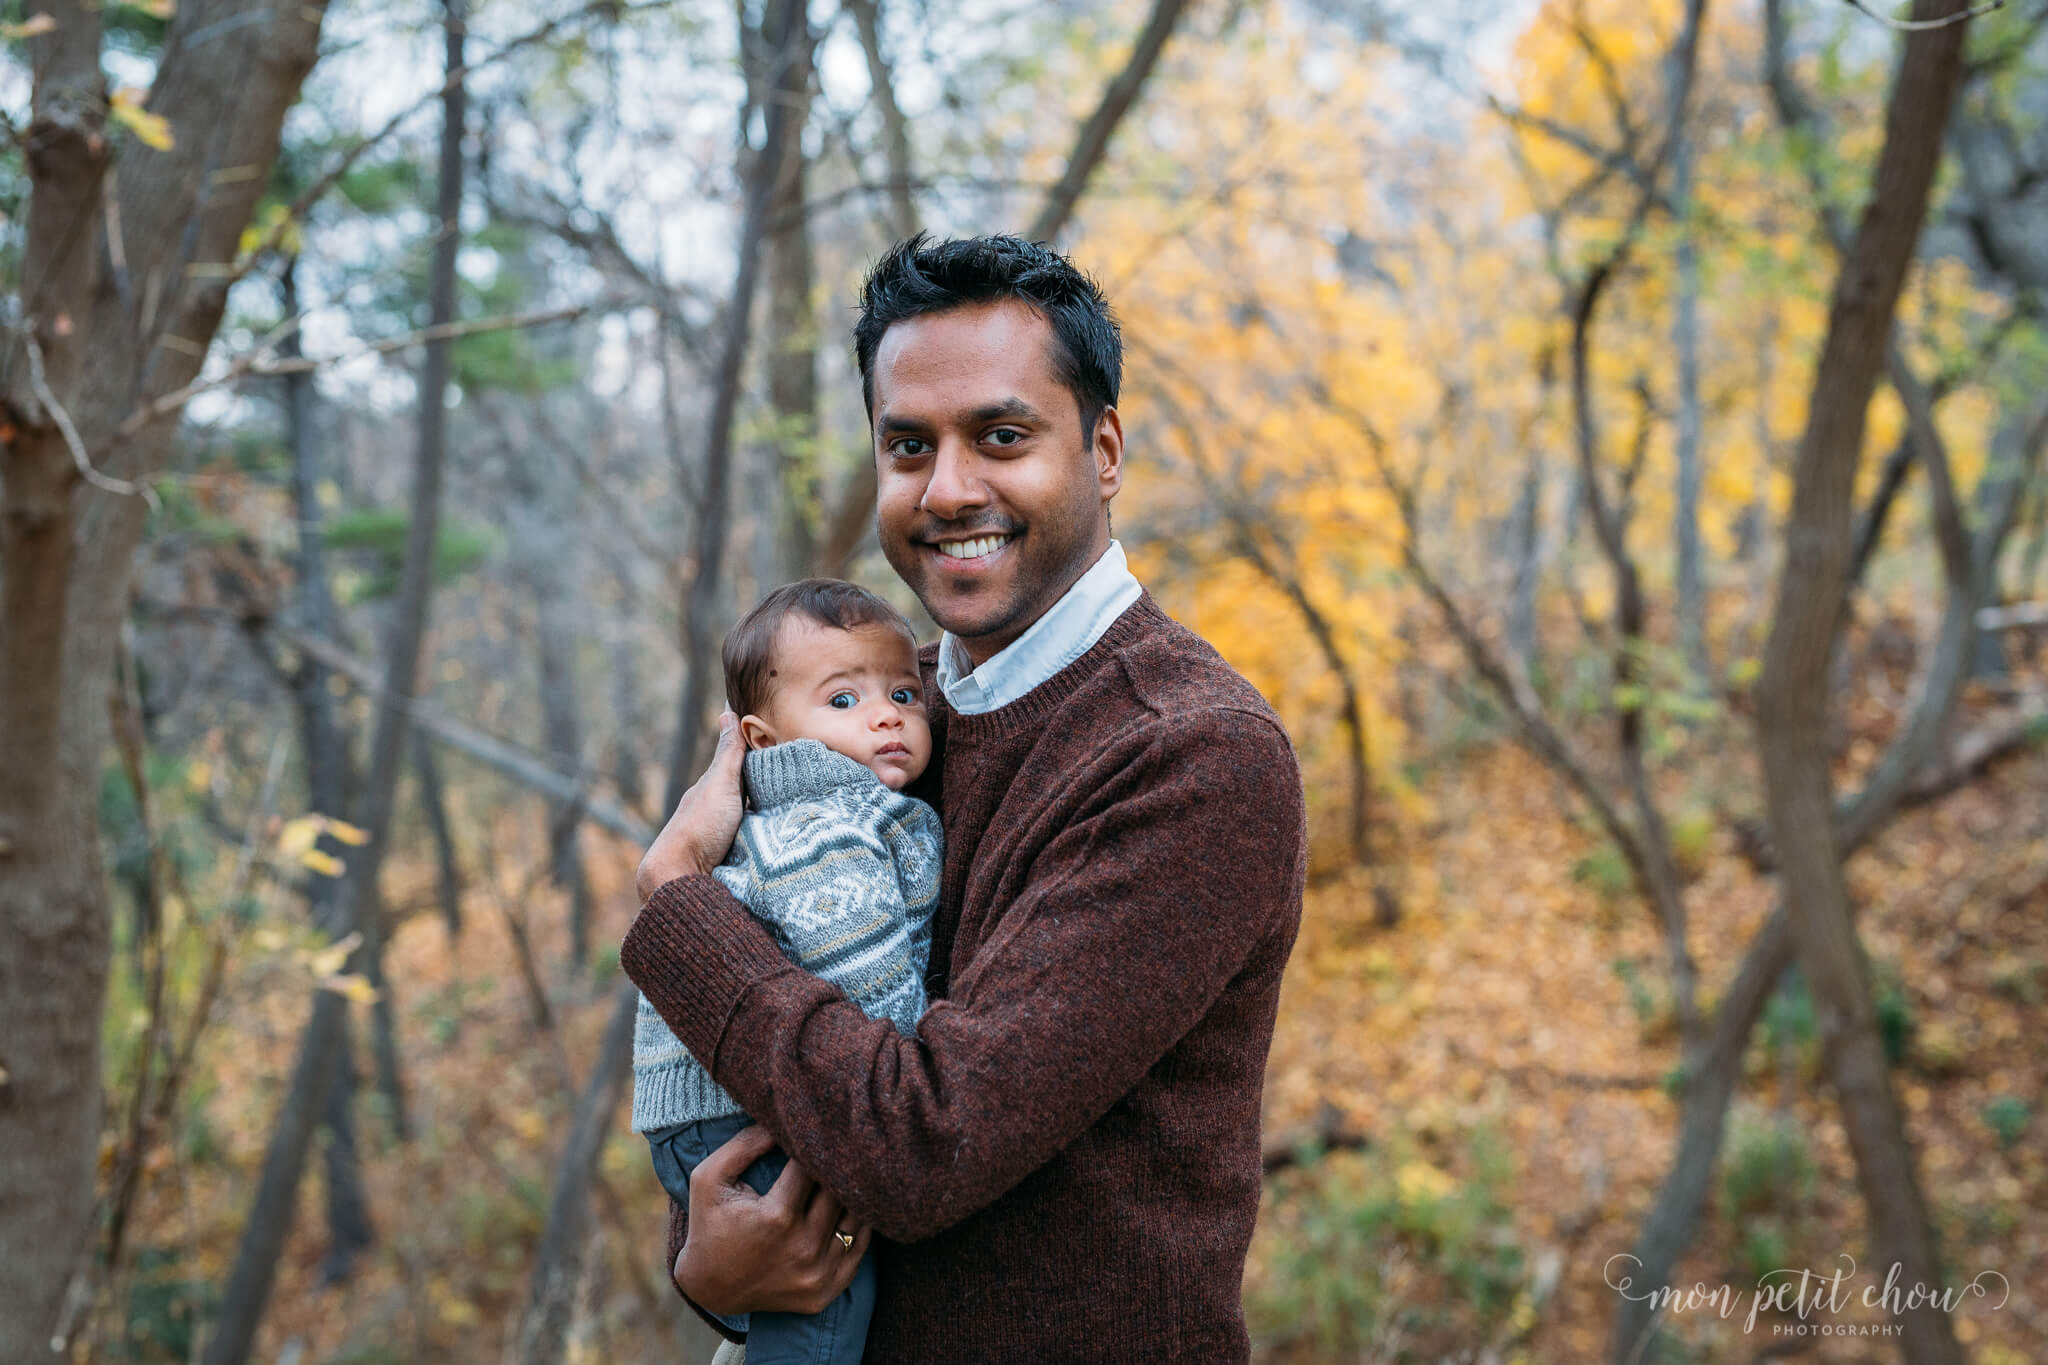 Fall photo in High Park with baby and dad